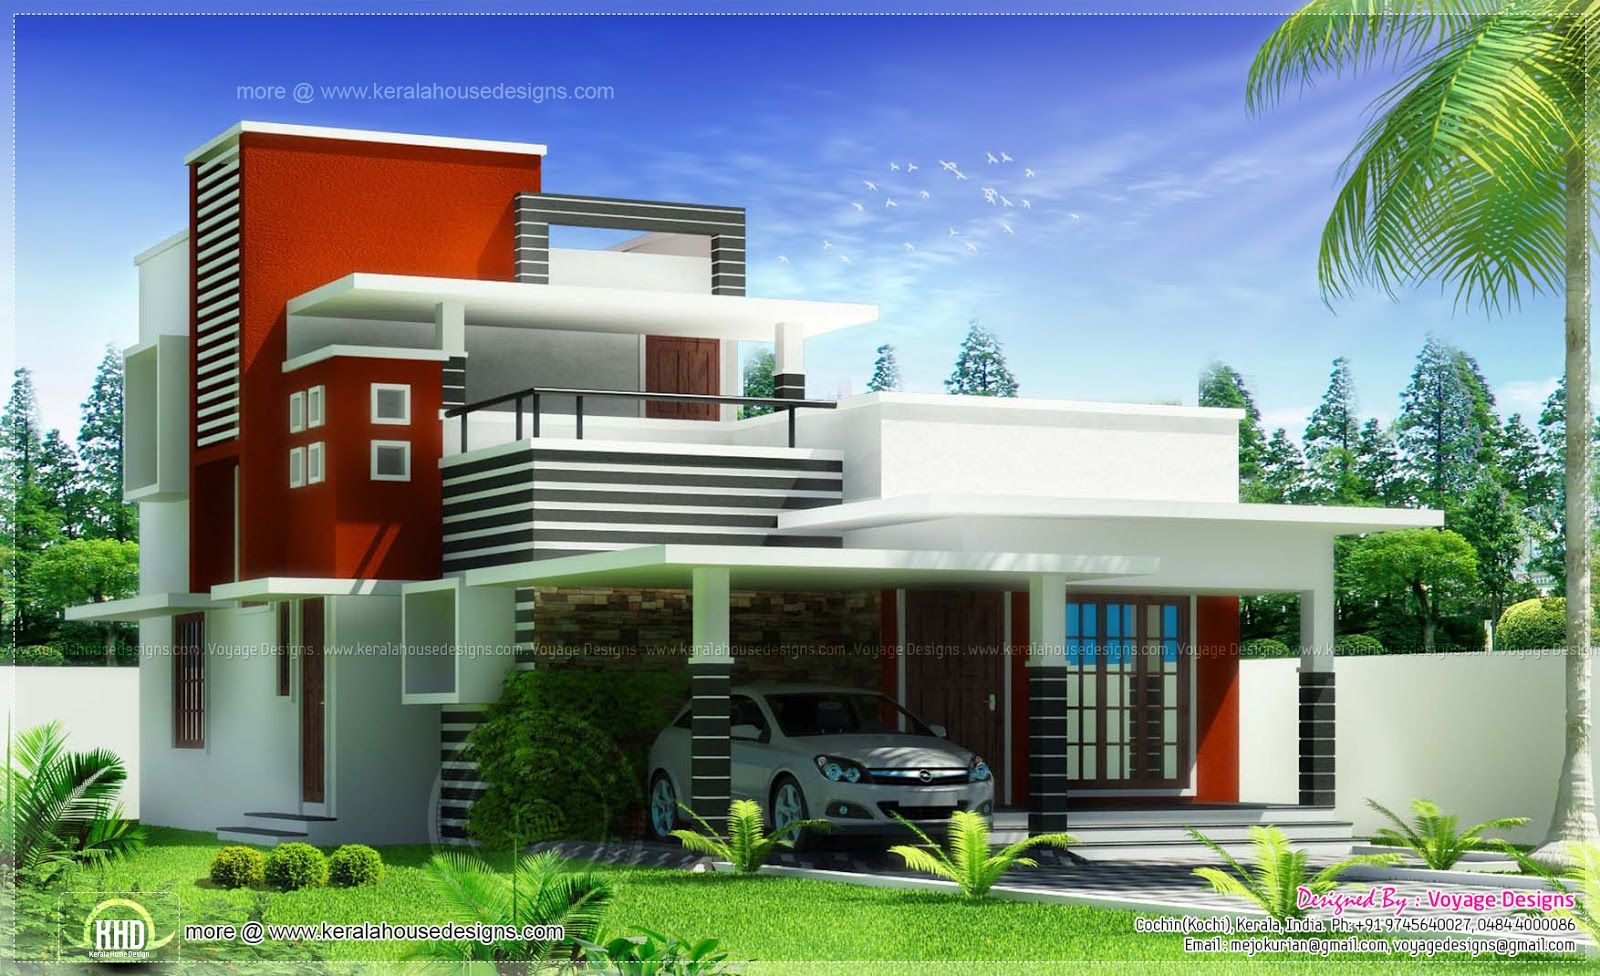 Kerala house designs architecture pinterest kerala for Kerala houses designs